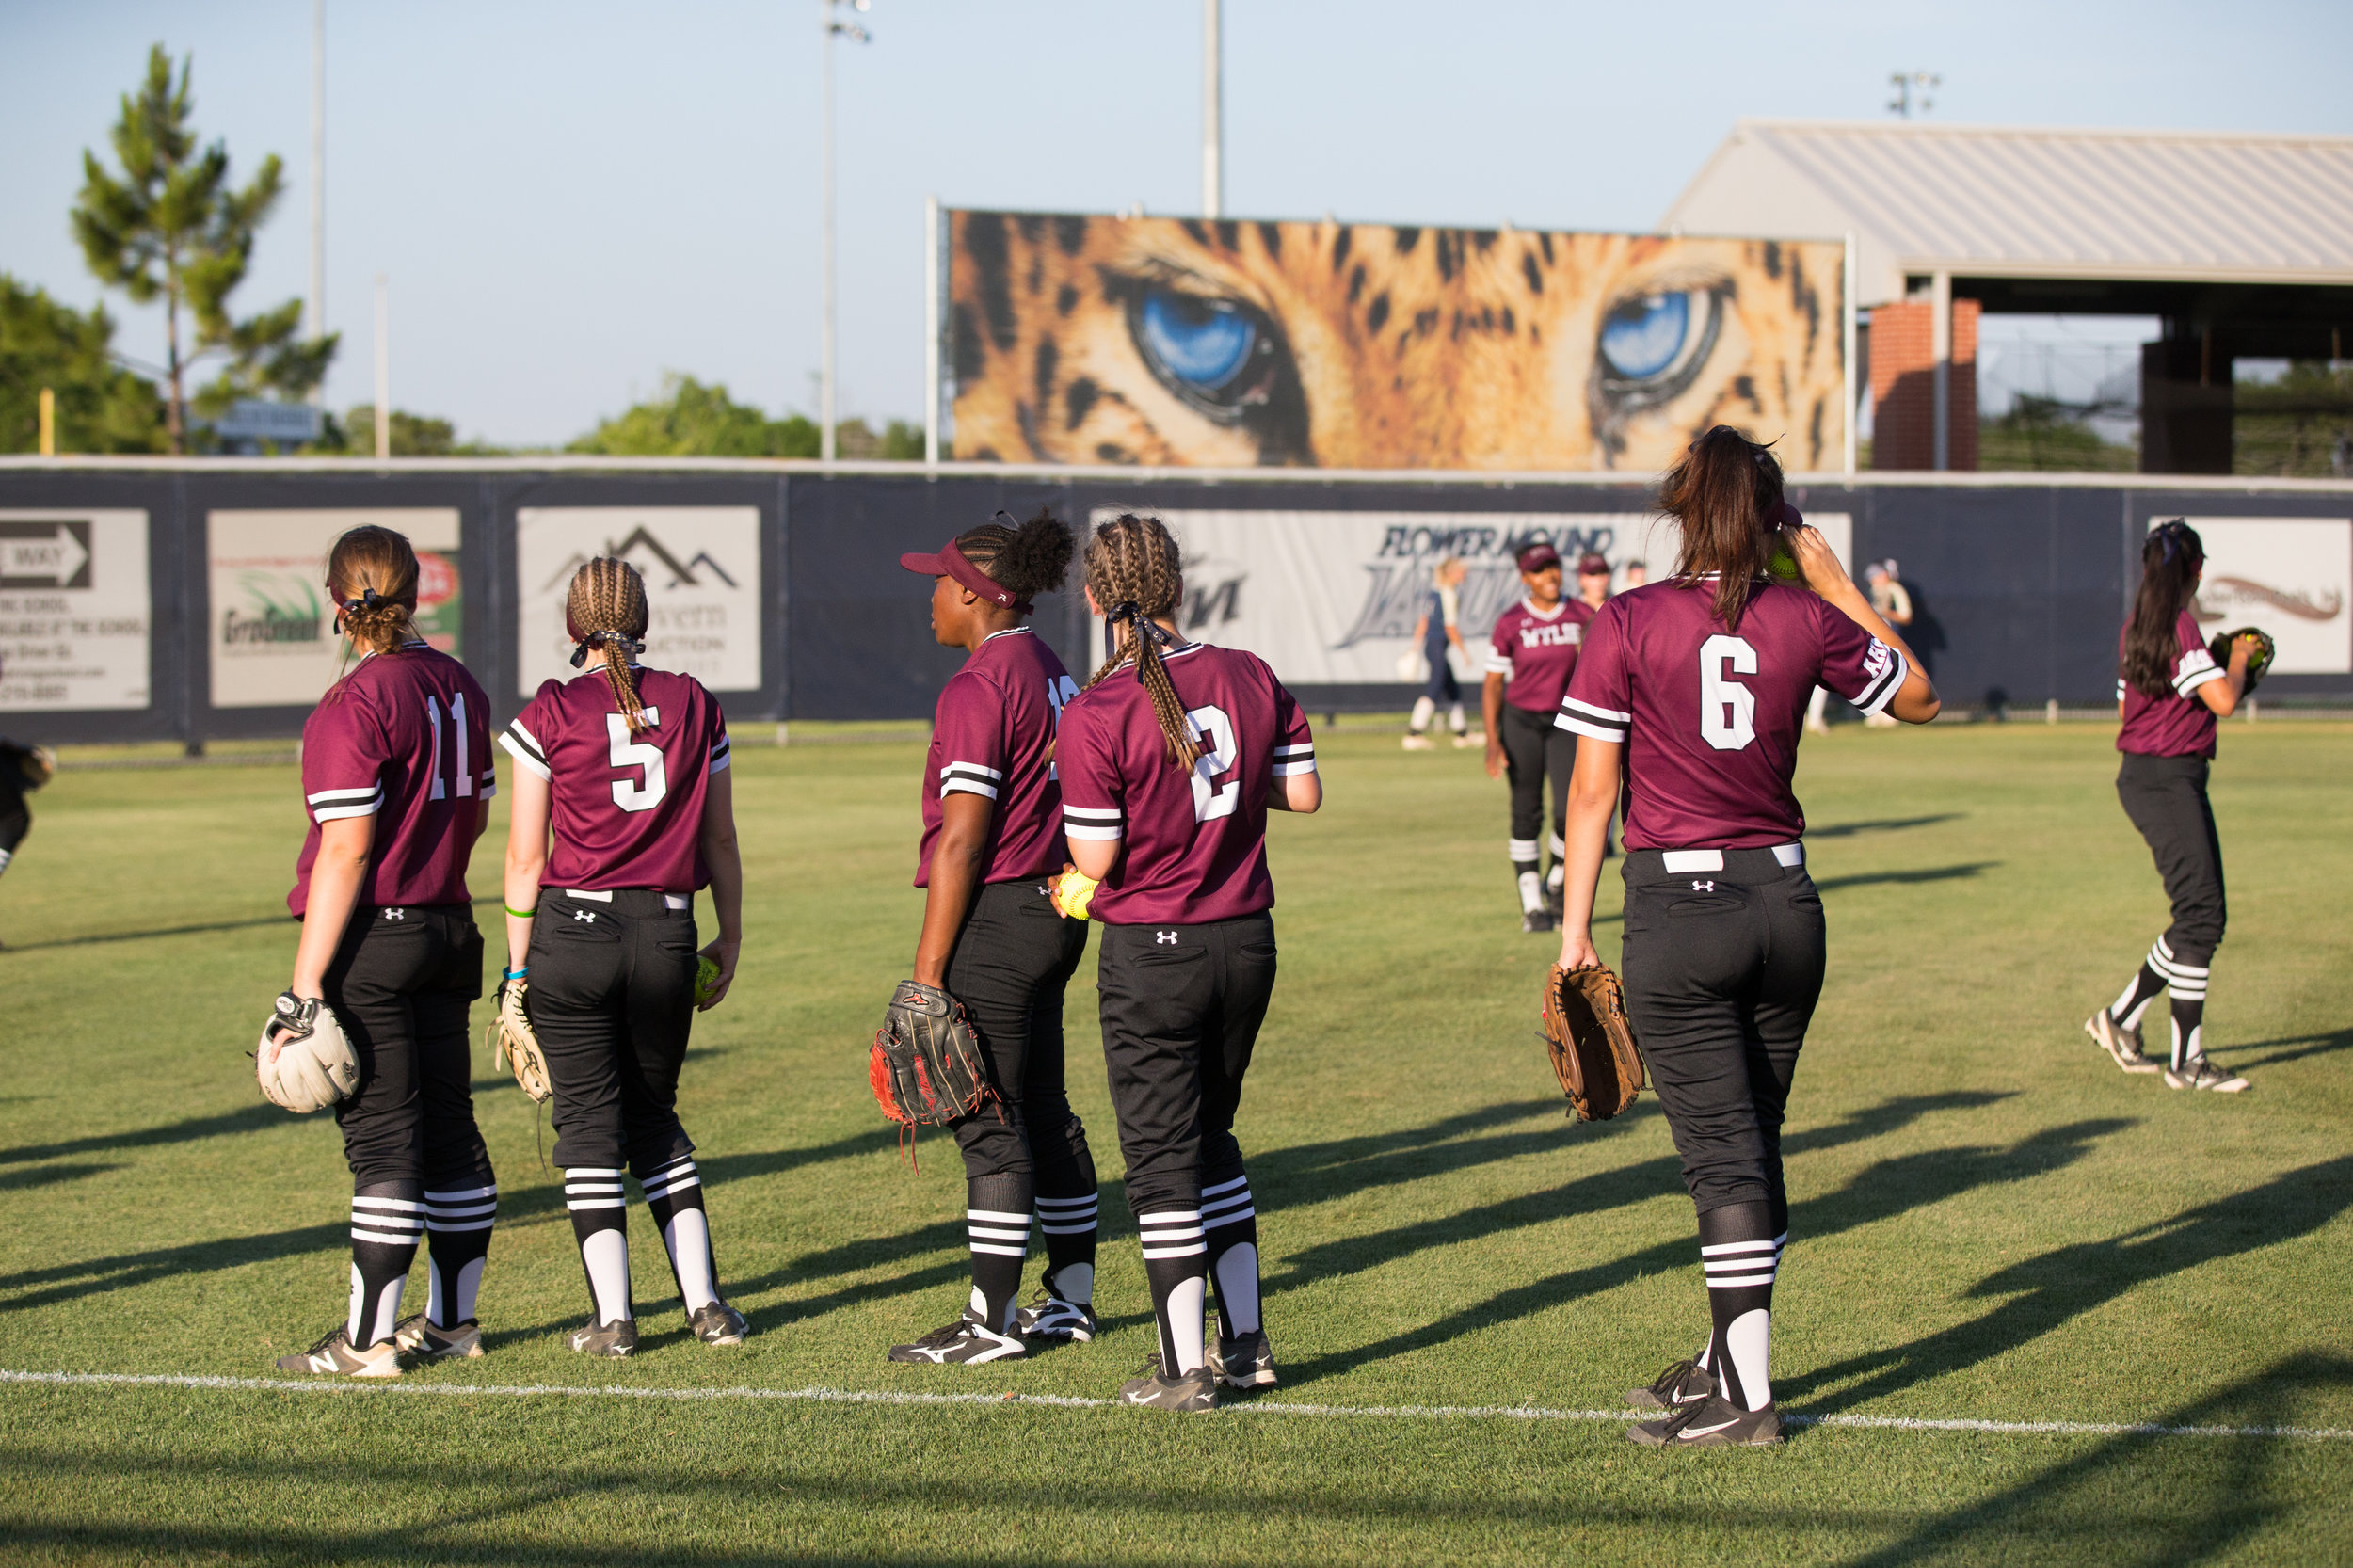 5_18 Wylie Softball-108.jpg